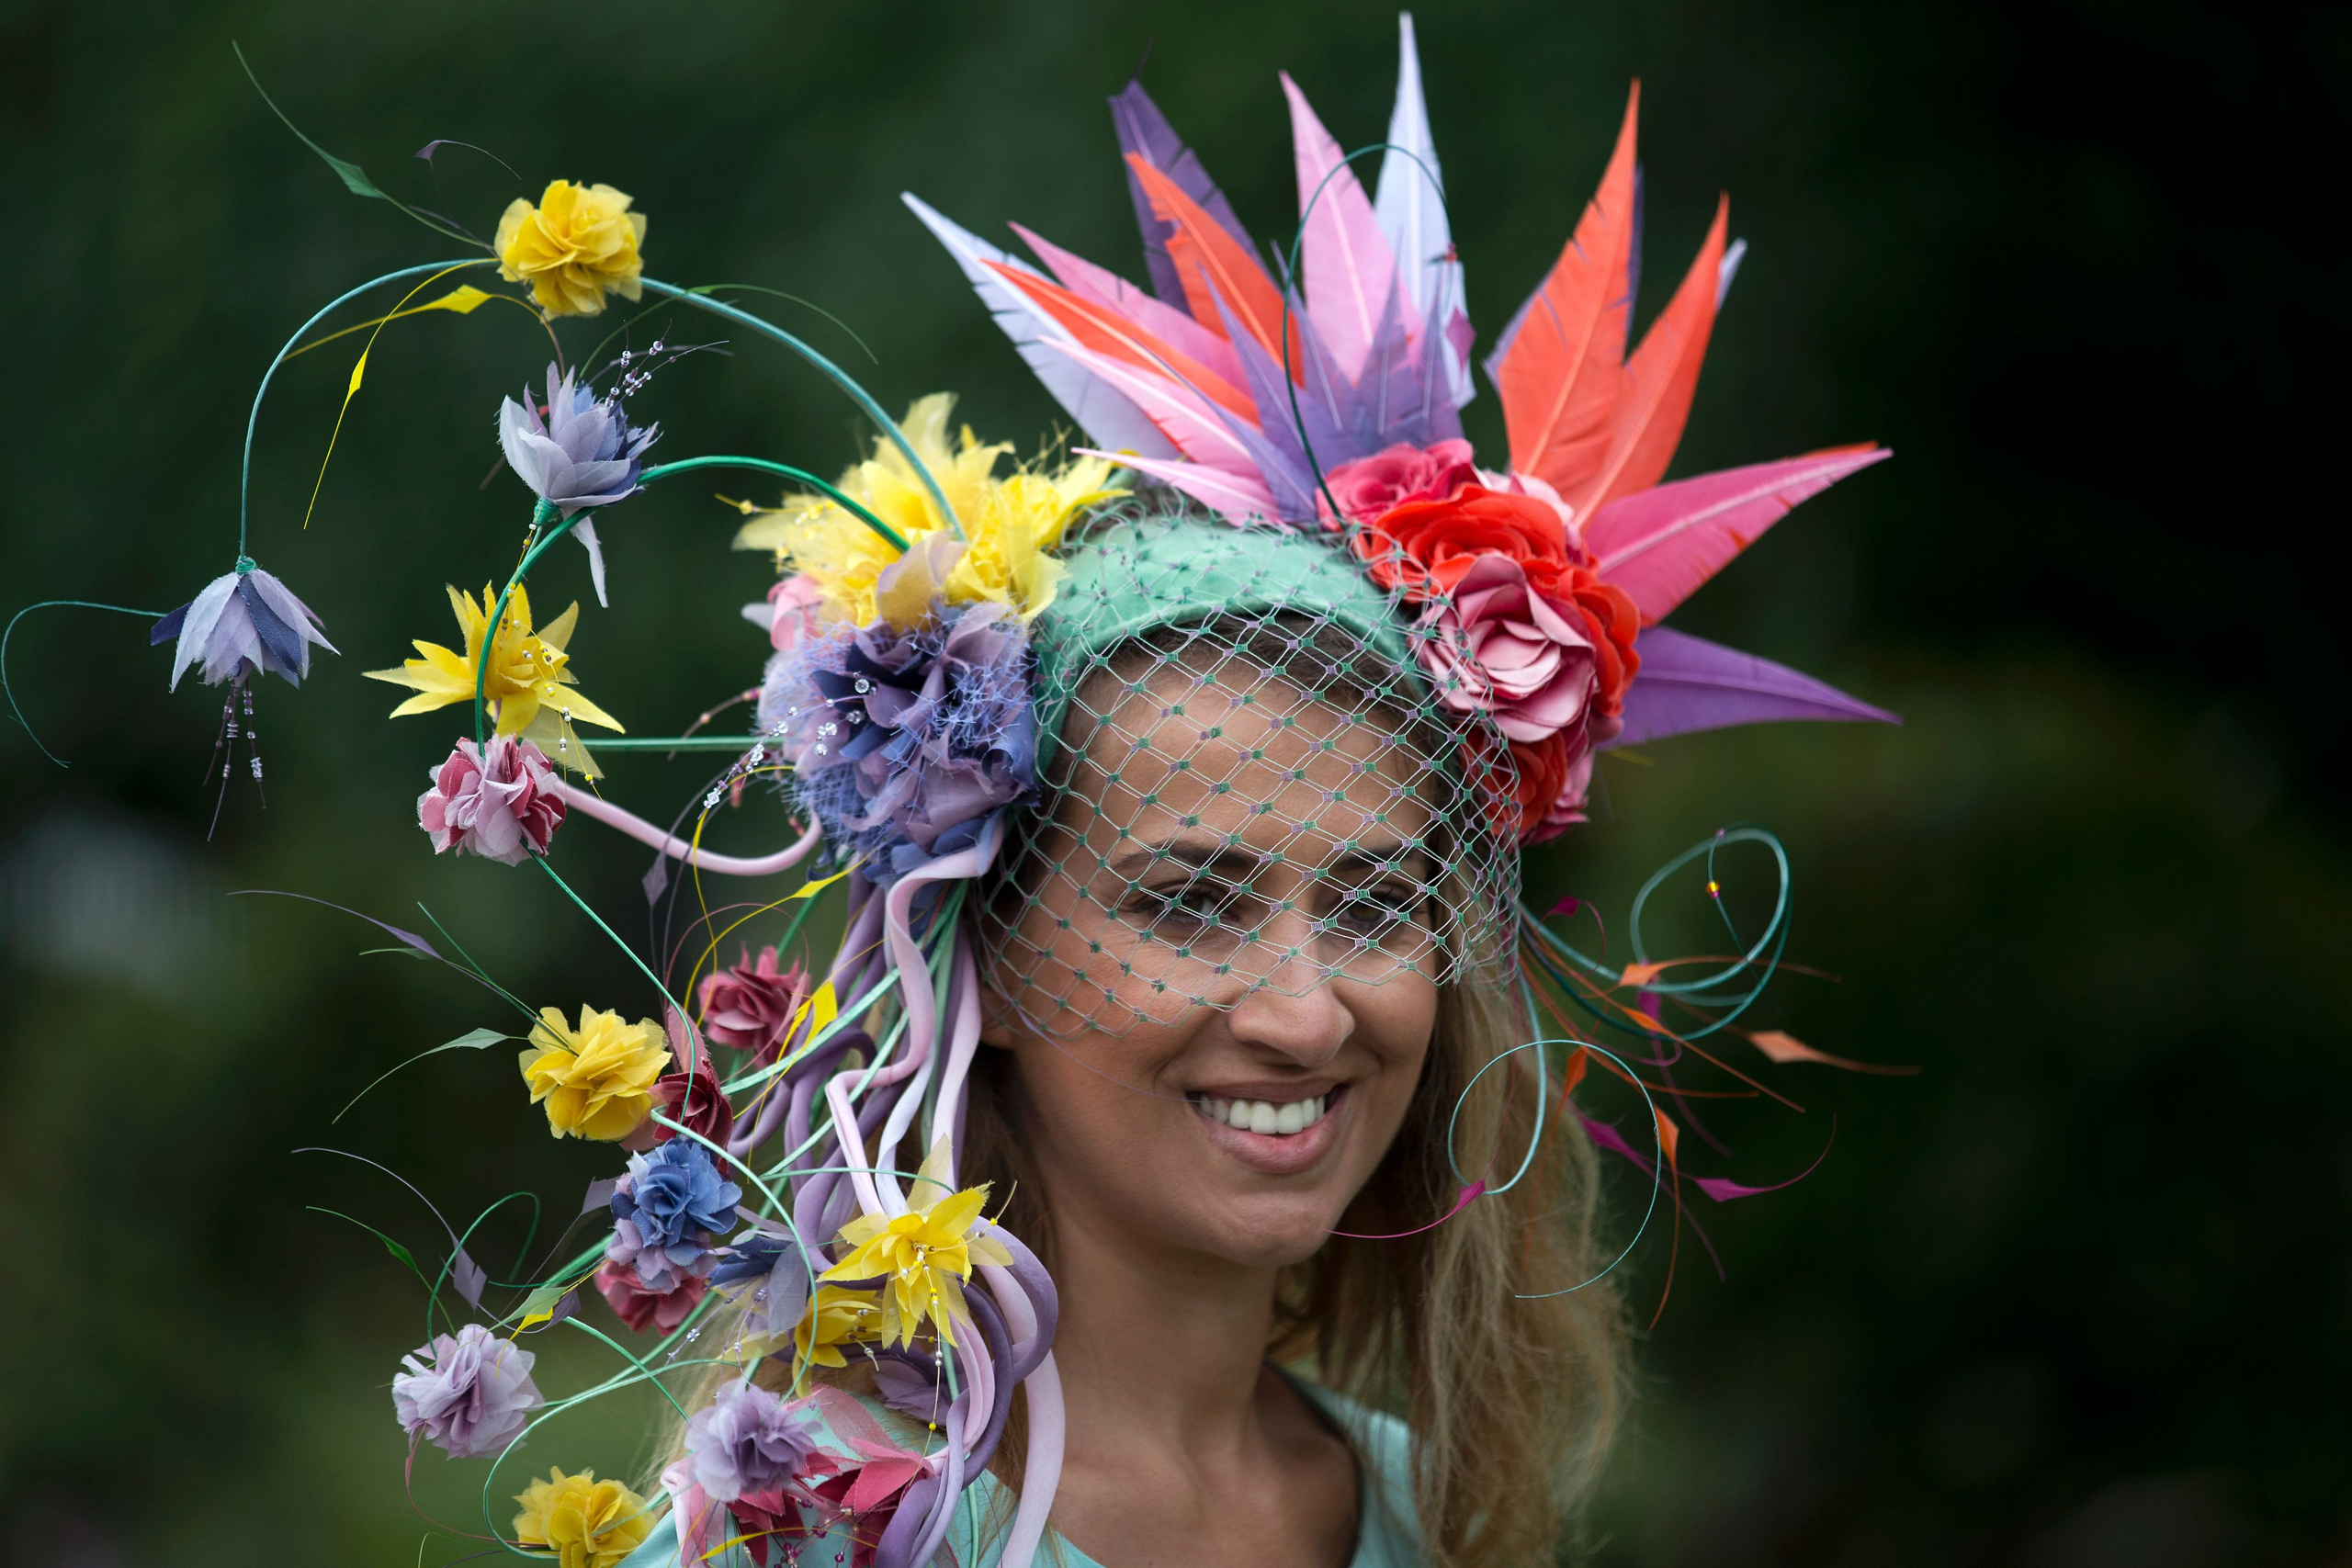 A race-goer poses for photographers on the first day of the Royal Ascot horse race meeting in Ascot, U.K., on June 14, 2016.